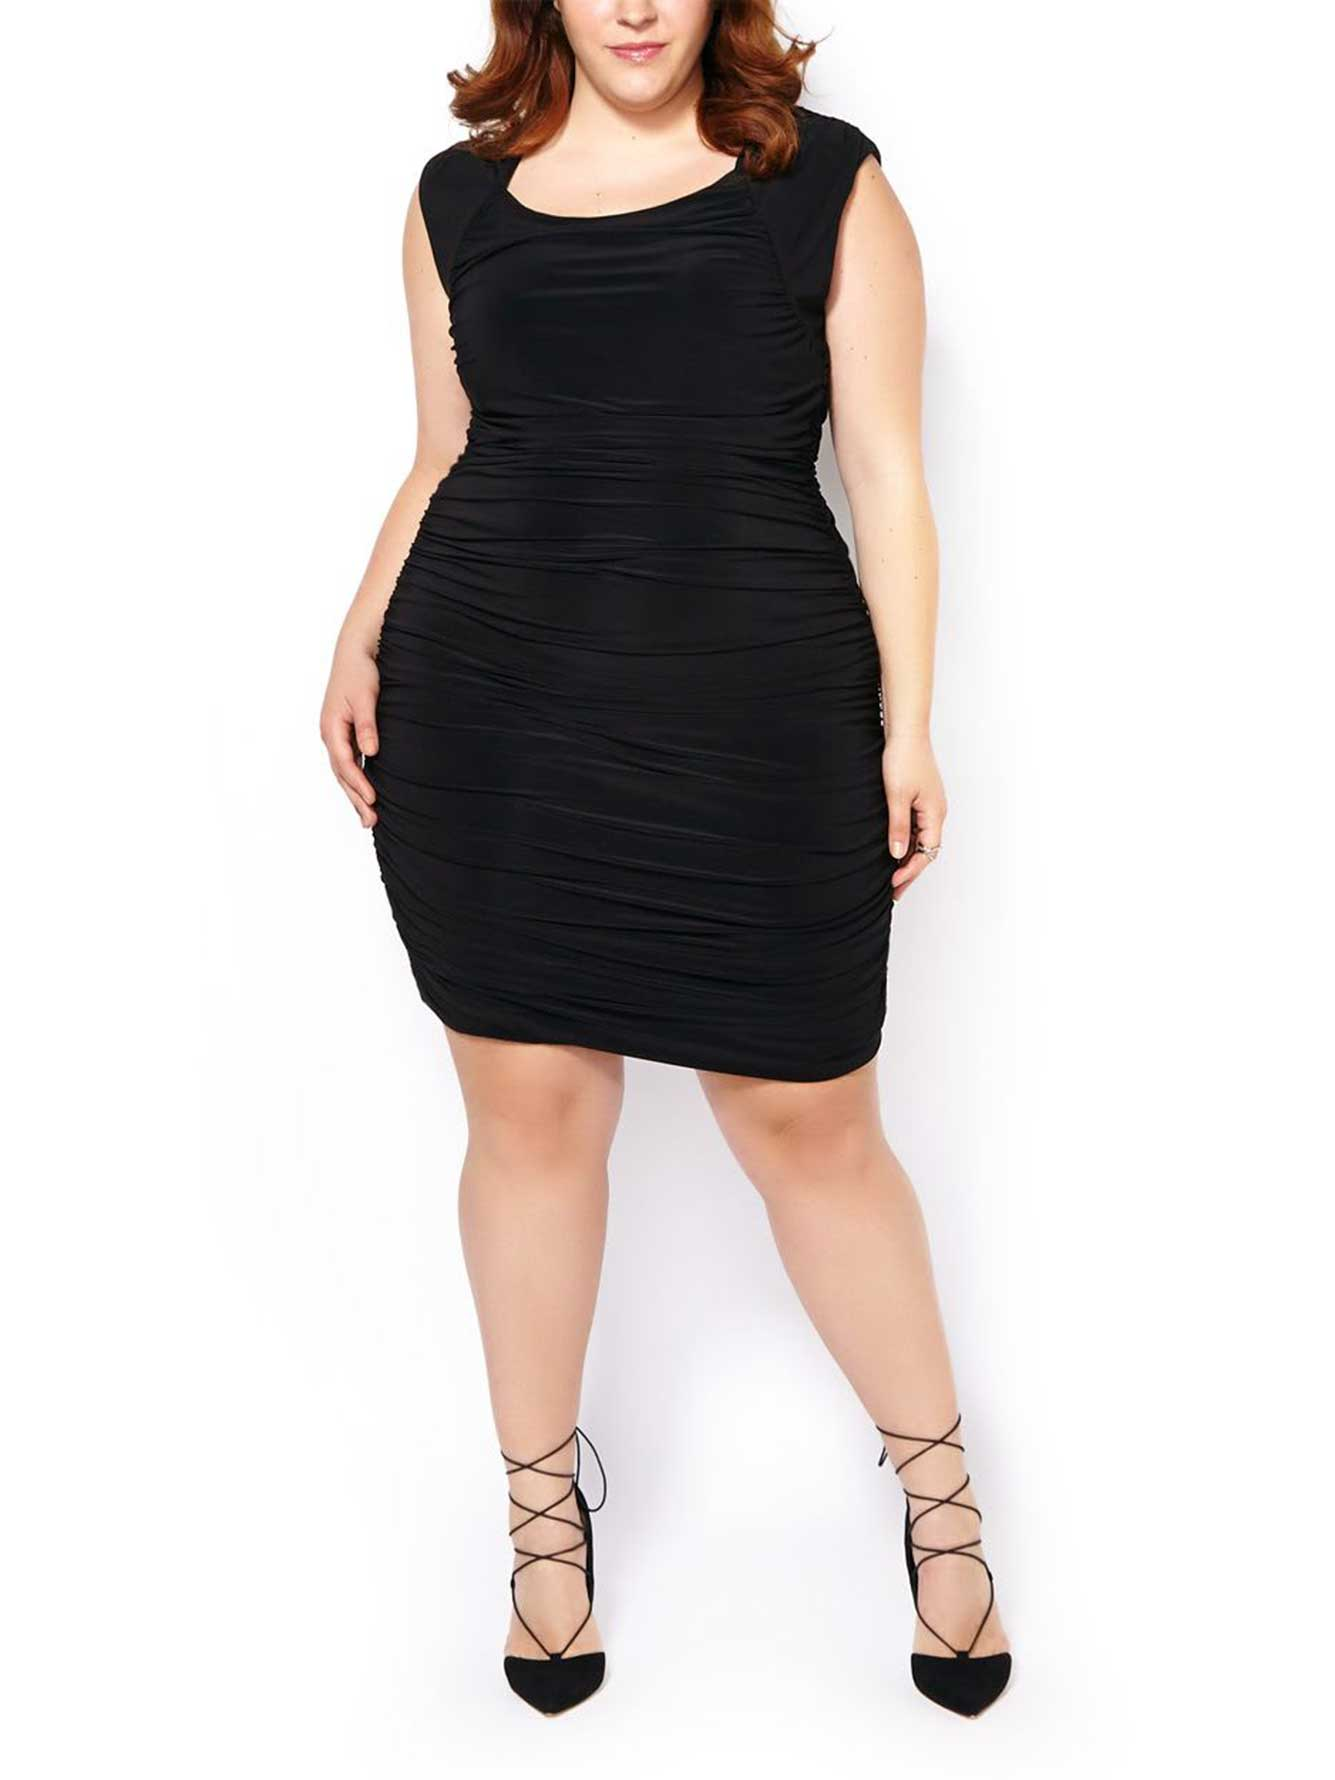 Little Black Dresses - Formal & Casual Black Dresses. The little black dress is the answer to all those what-to-wear dilemmas. The LBD is the closet staple that will forever remain timeless thanks to its simplistic yet powerful nature.